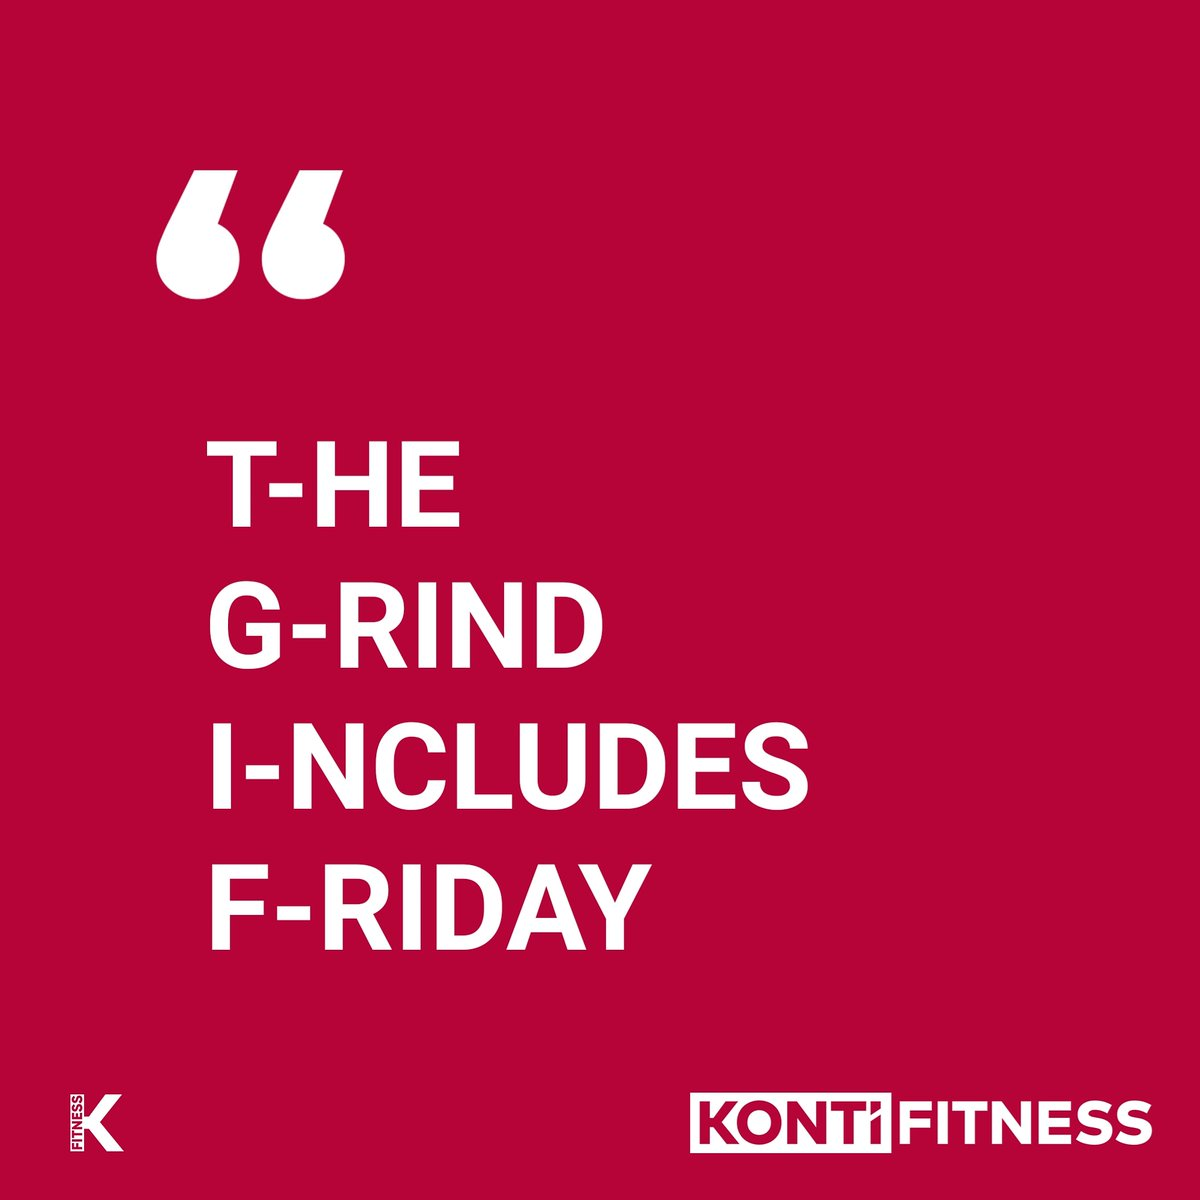 #tgif means keep the grind going. What are you all training today?? We hope you absolutely smash your sessions and have a stunning day!  #personaltrainer #fitnessmotivation #gymmotivation #kontifitness #thedoktor  #motivation #goals #hardwork #personaltraining #canberrapt #svppic.twitter.com/4vA5ushpiP